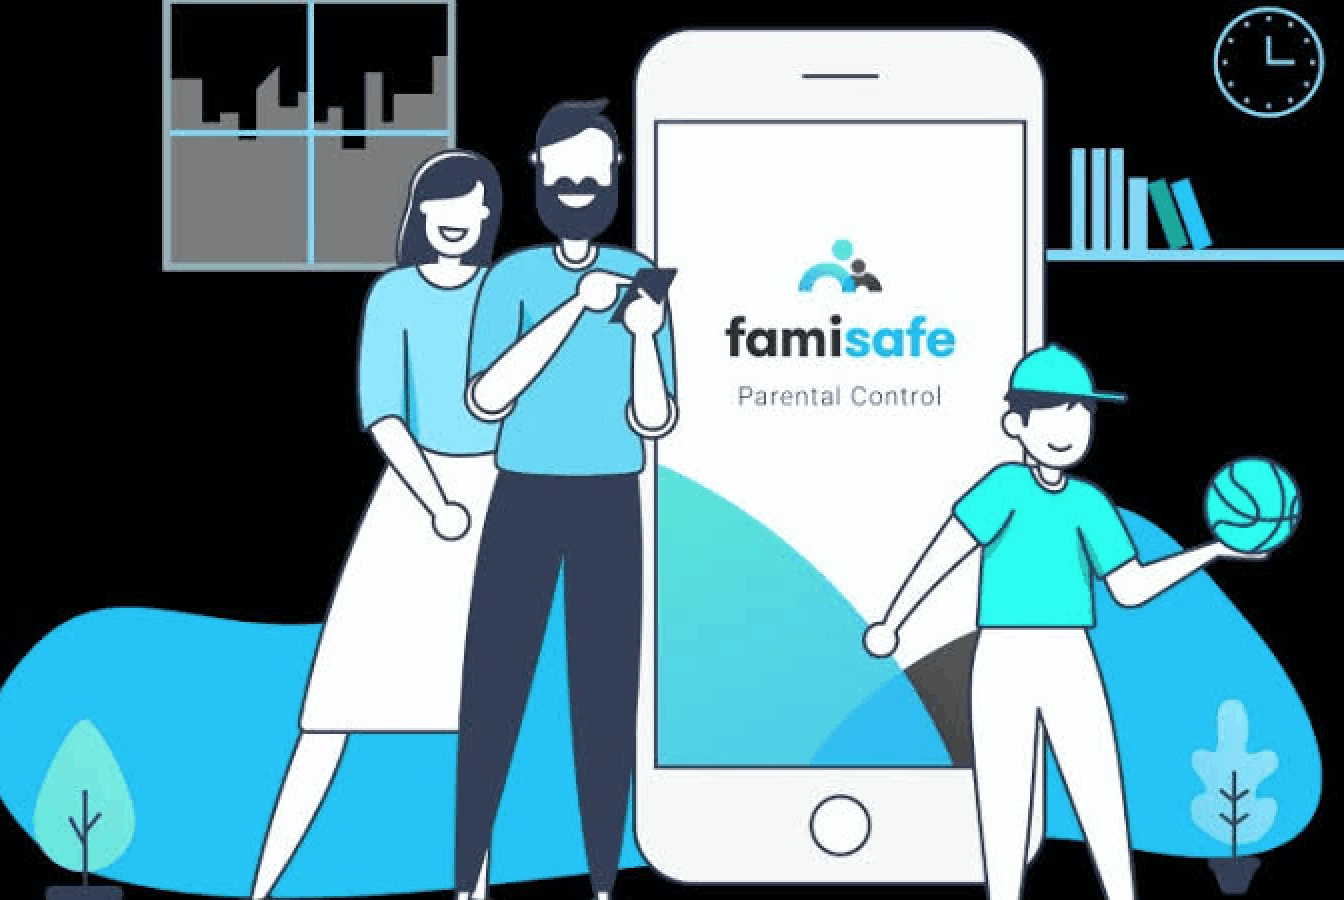 Famisafe: Every Home's No cyberbullying tool